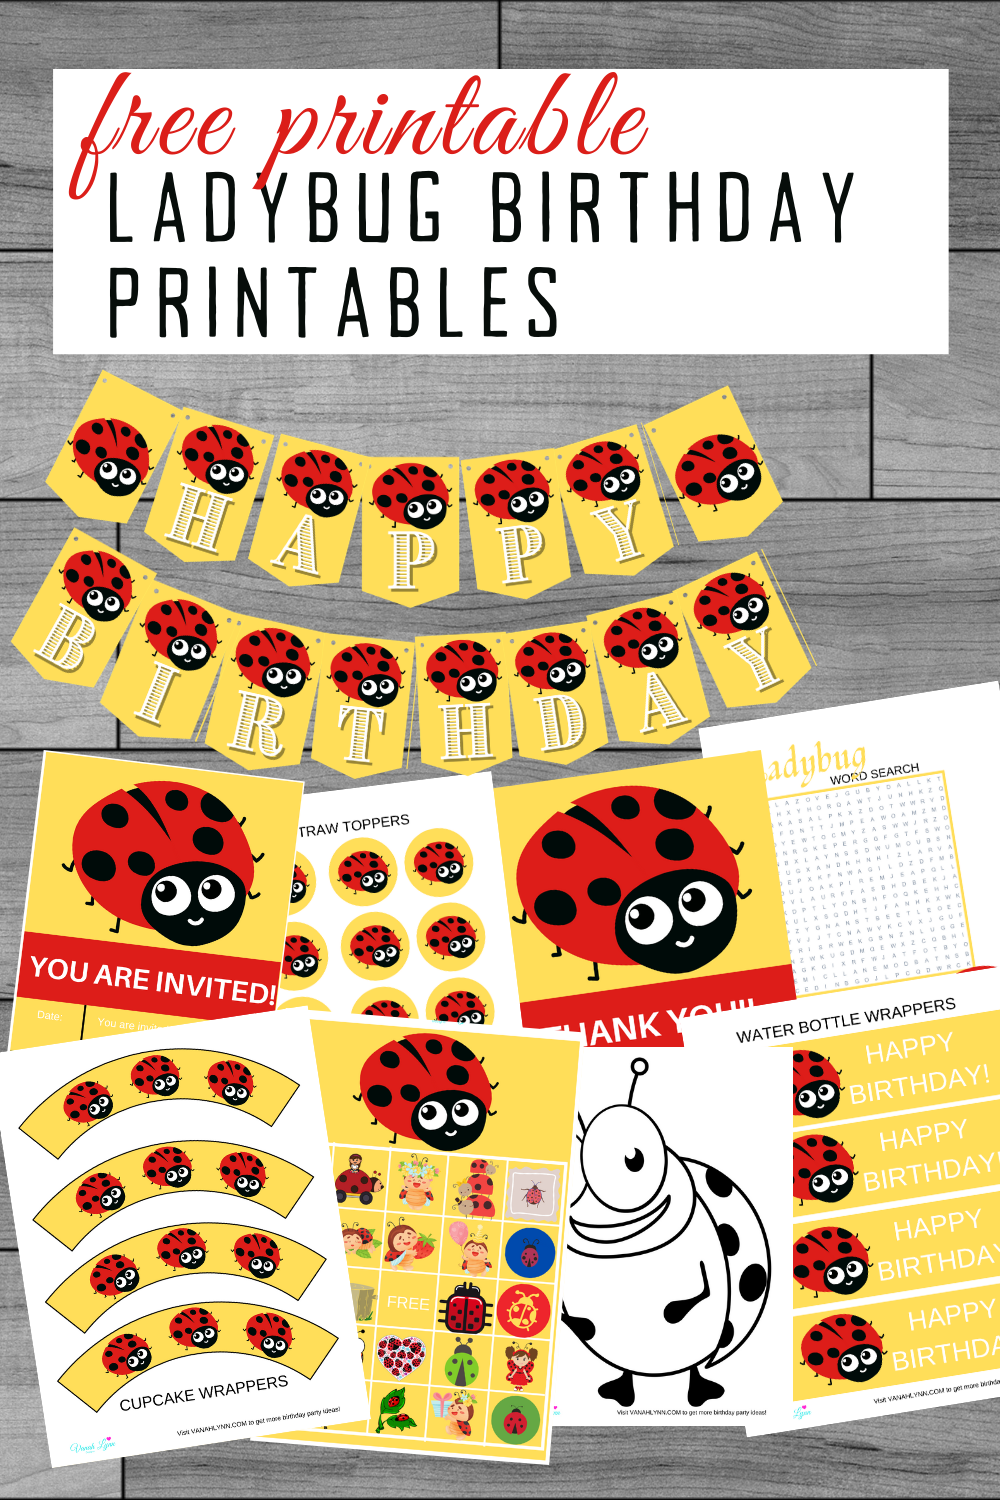 ladybug birthday party ideas and games